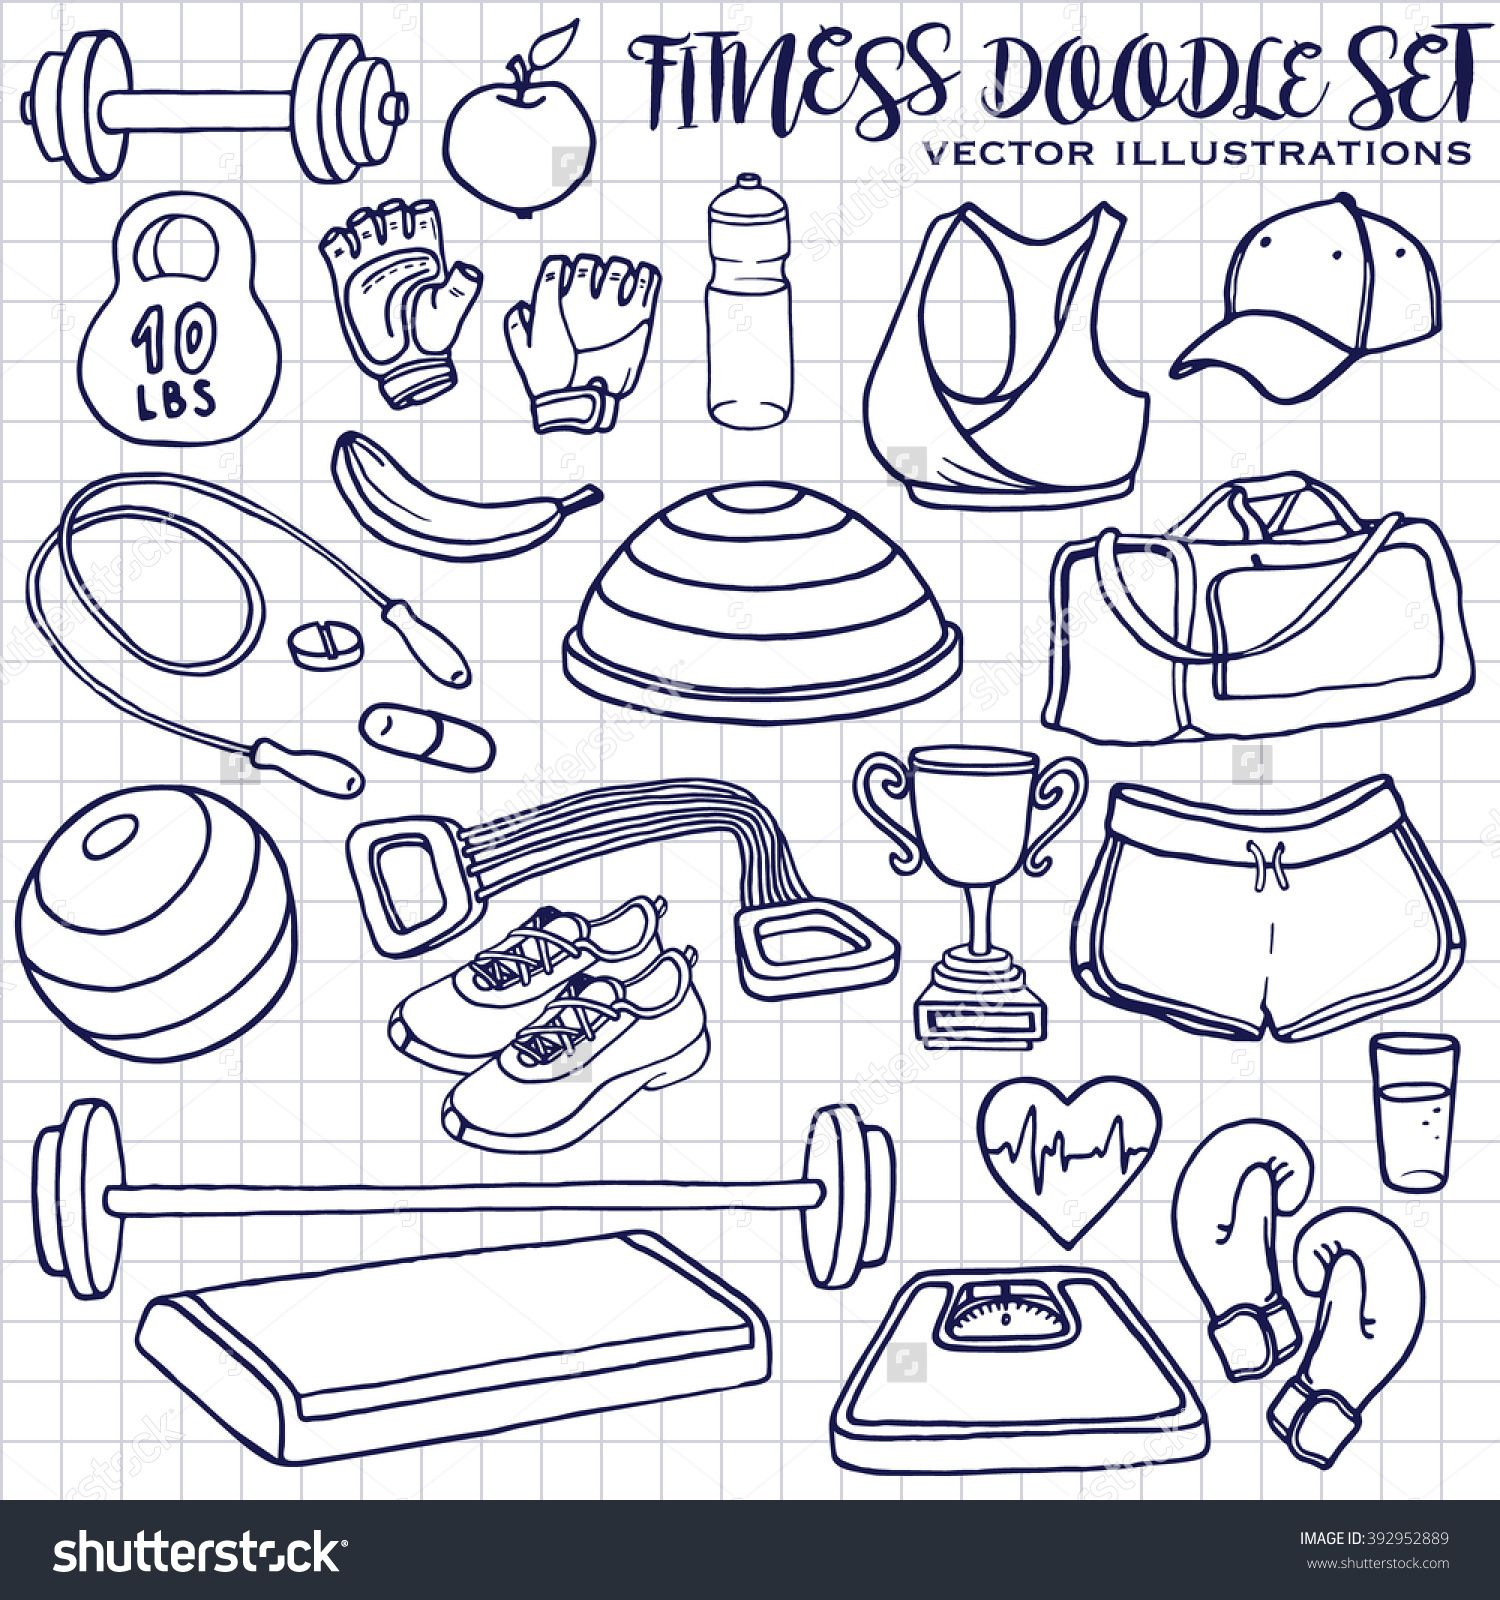 1500x1600 Hand Drawn Fitness Doodle Set On Squared Notepad Page, Vector